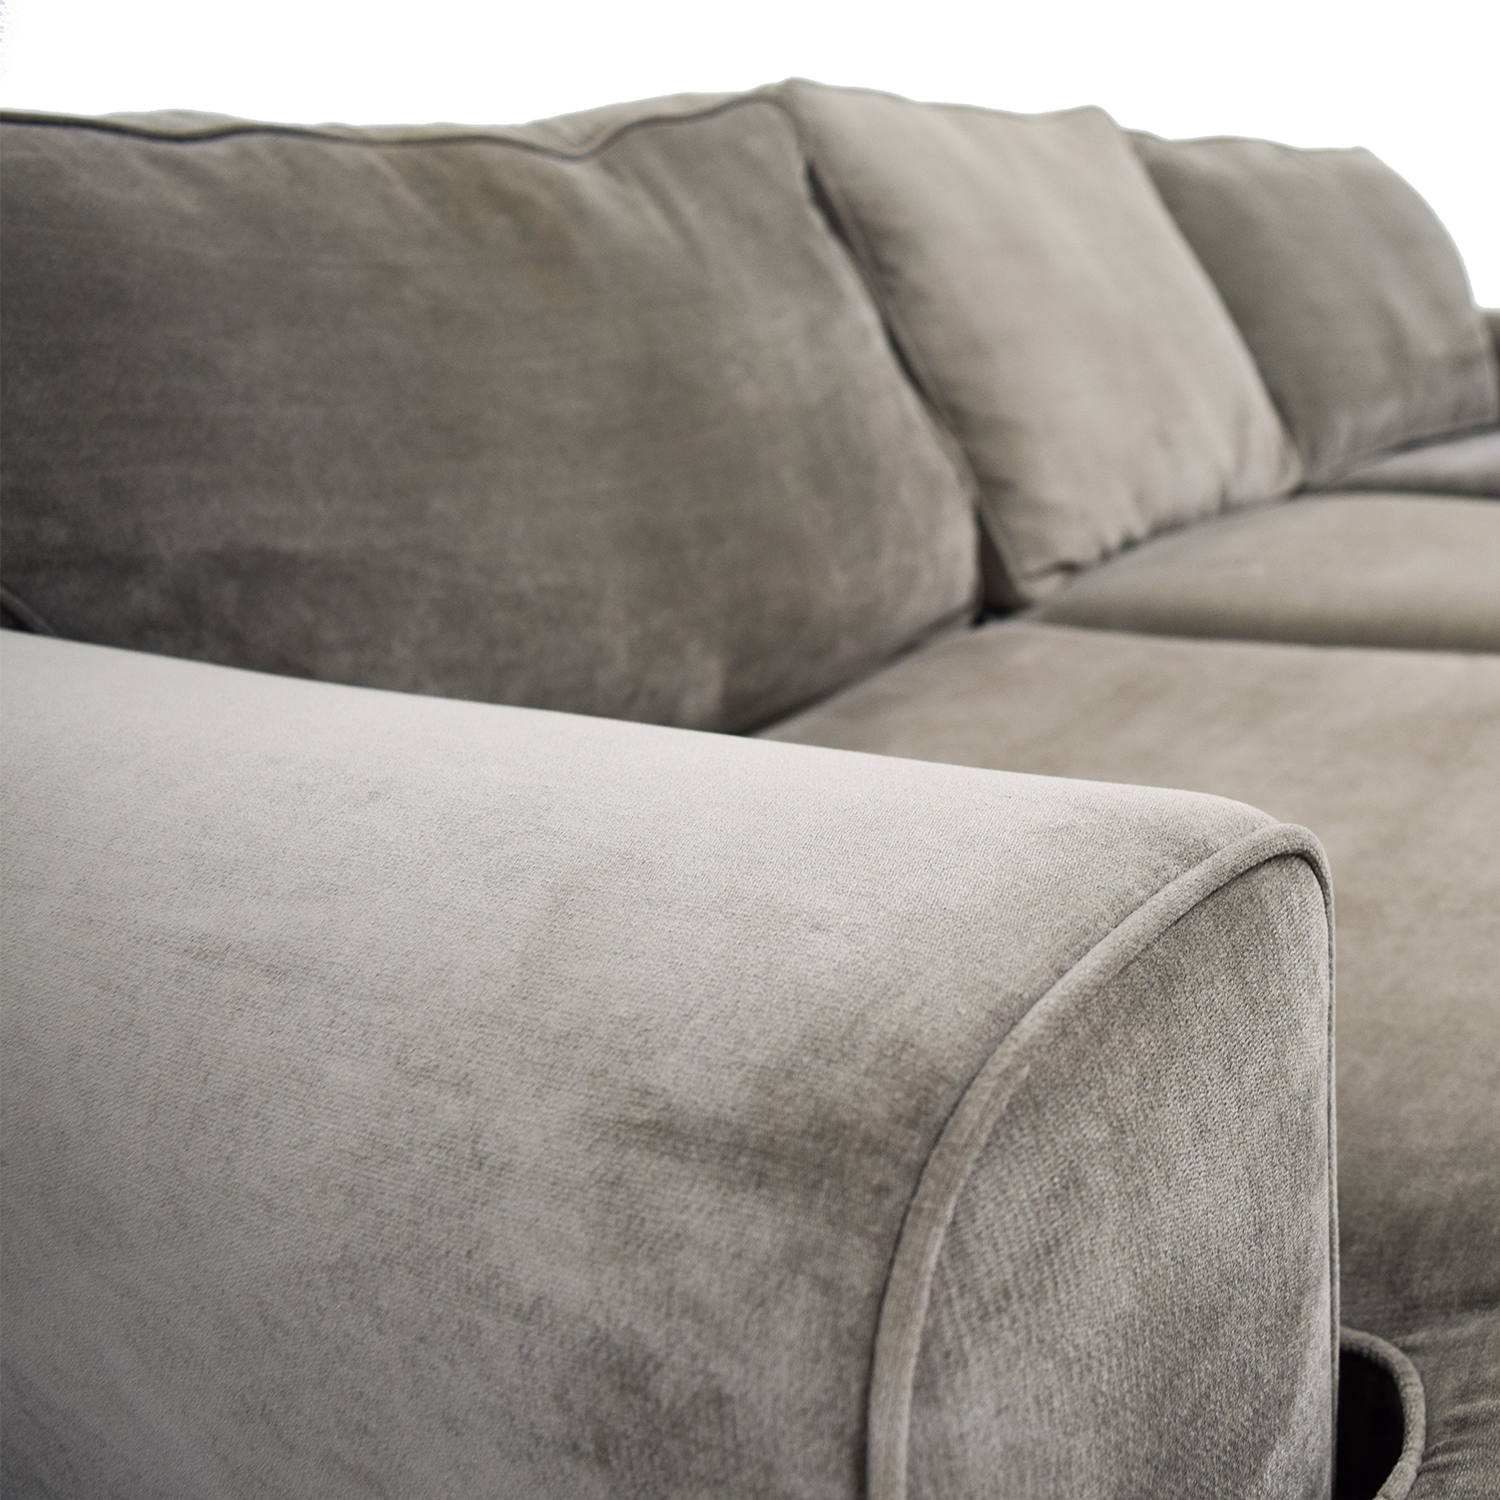 Incredible 60 Off Crate Barrel Crate And Barrel Gray Velvet Chaise Sectional Sofas Ibusinesslaw Wood Chair Design Ideas Ibusinesslaworg